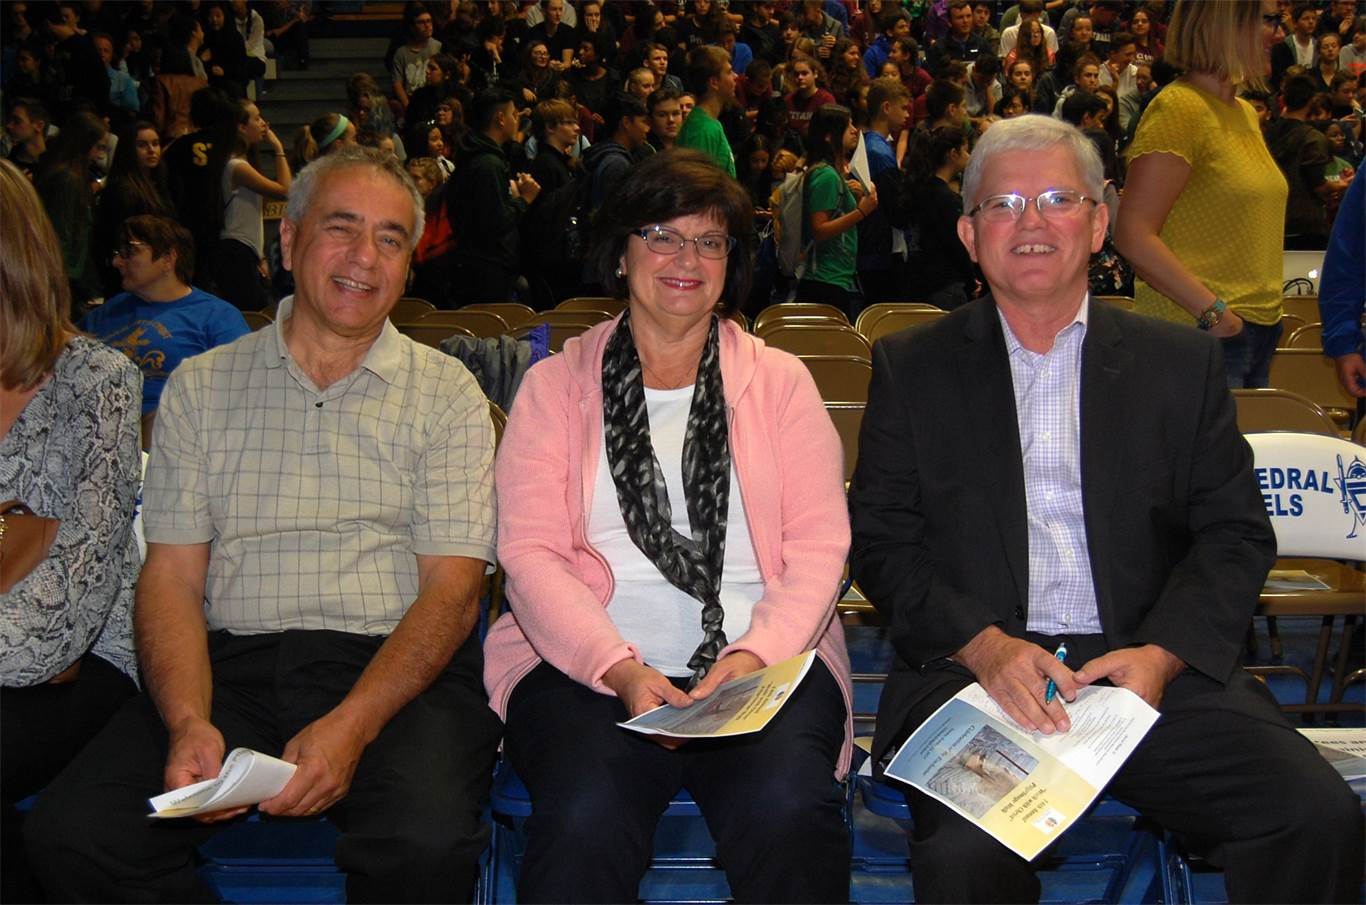 From left, trustees Aldo D'Intino (Ward 5), Mary Nardini (Wards 9, 10 & 11) and Patrick Daly (Ward 7) join students at the annual